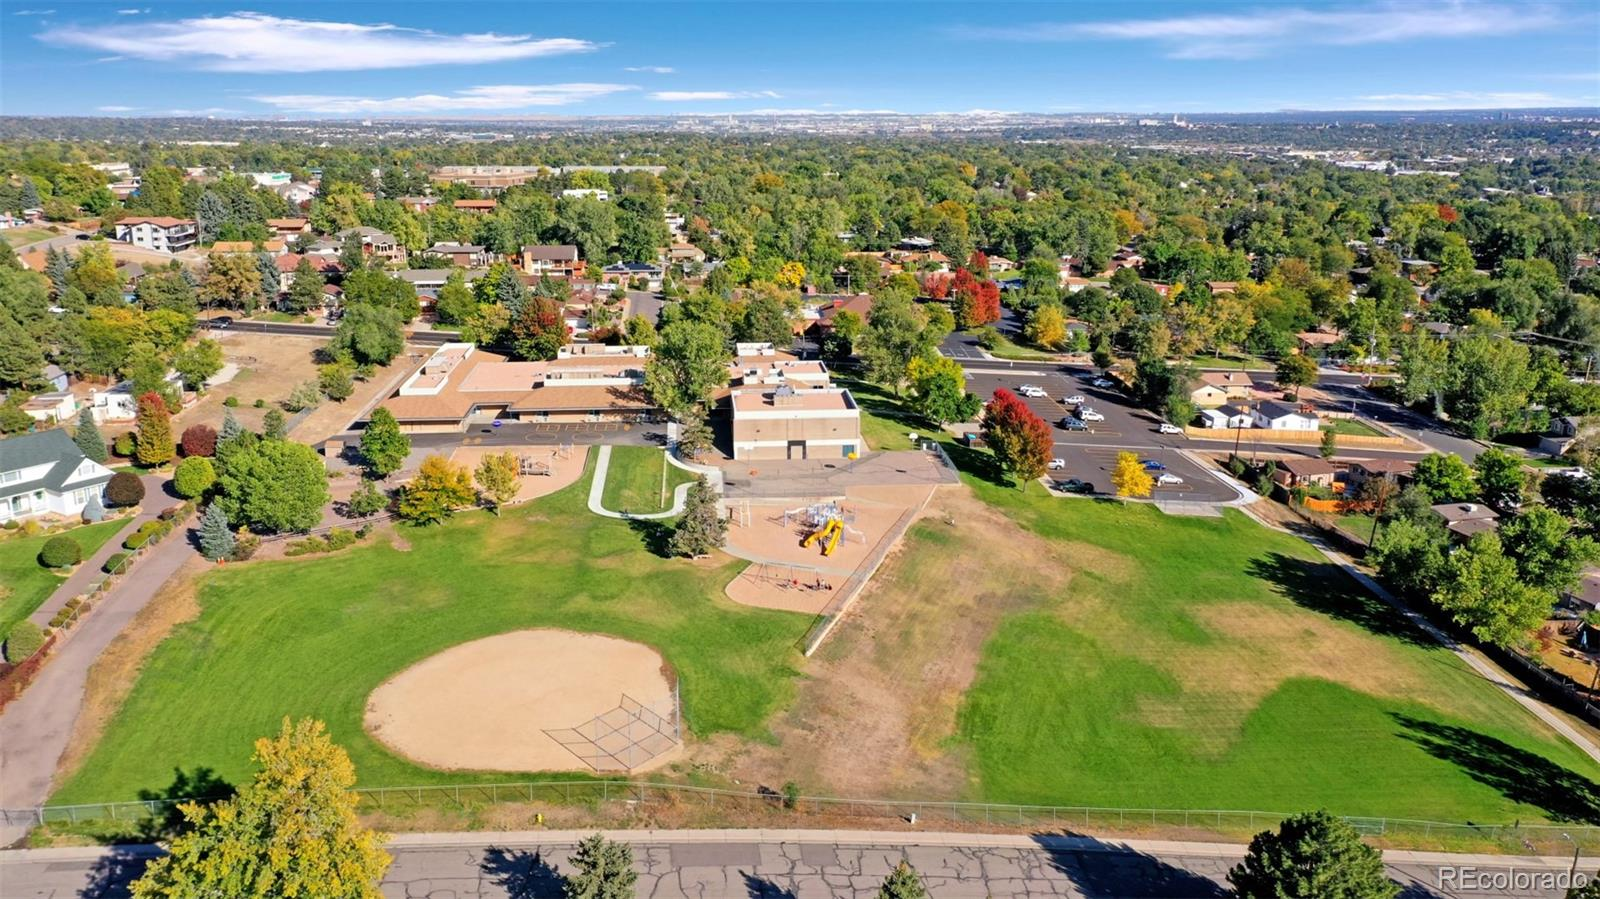 MLS# 6218447 - 17 - 9080 W 64th Place, Arvada, CO 80004